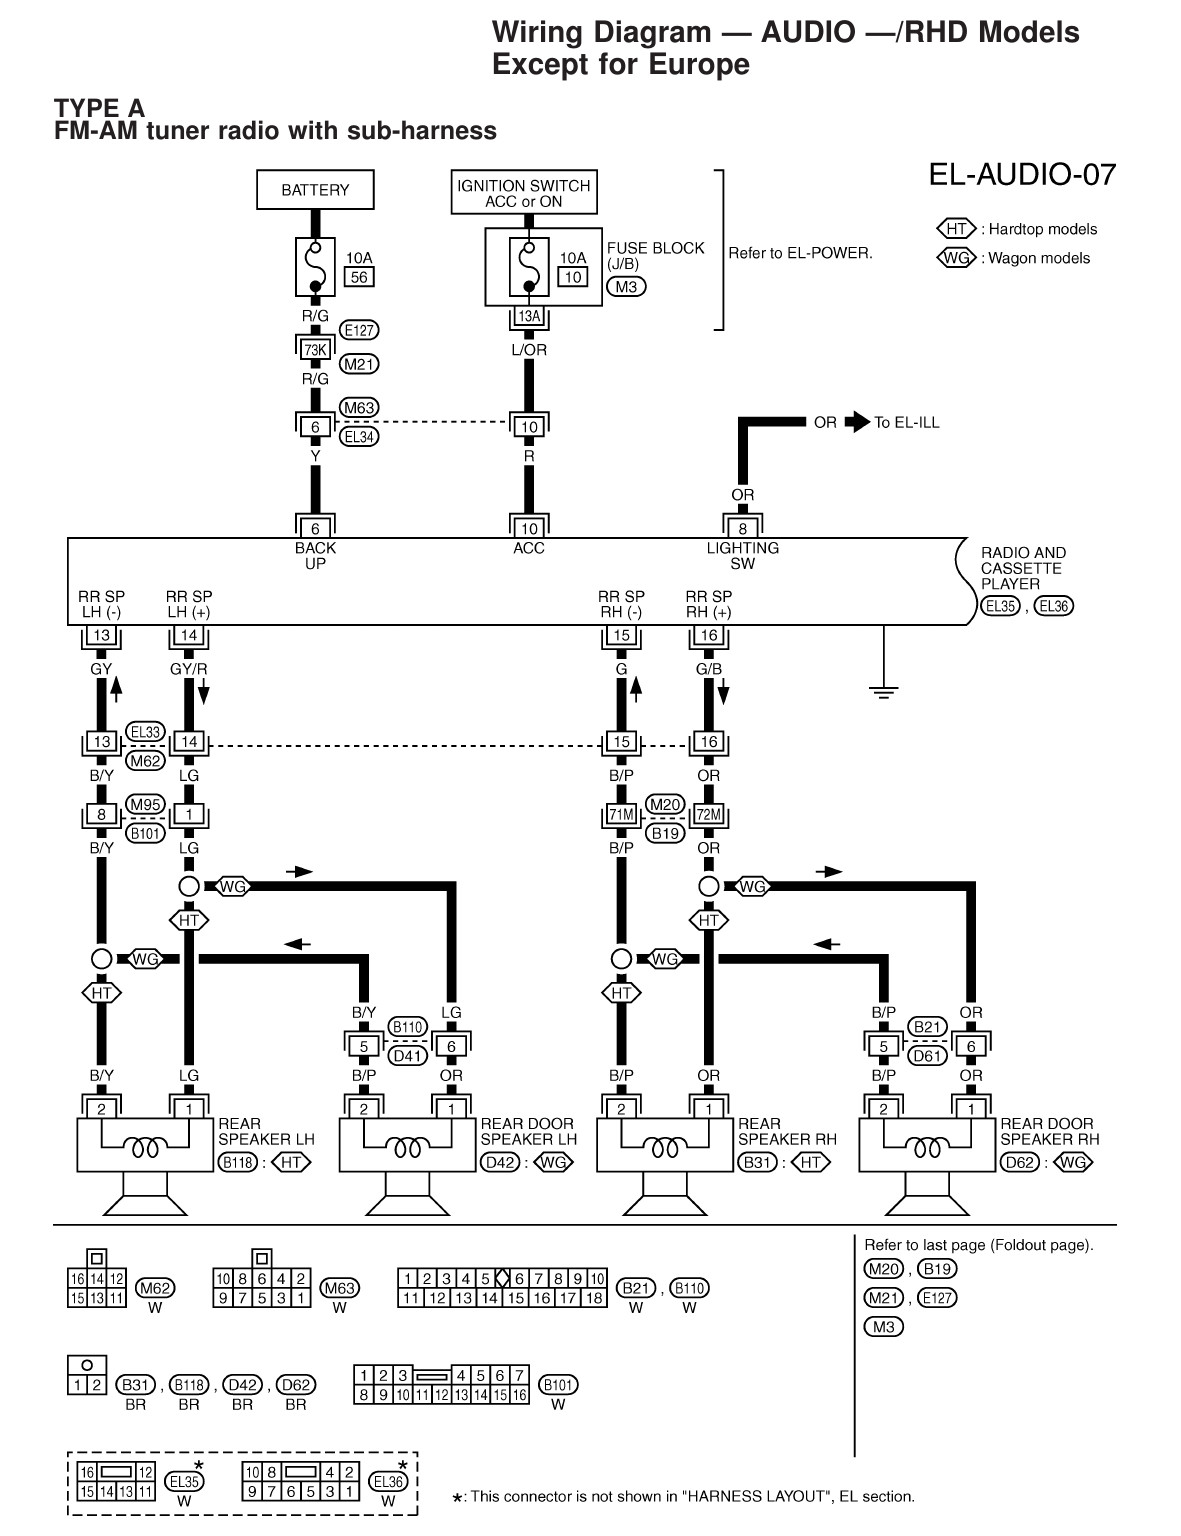 A7BE1F5 50qt Moped Wiring Diagram | Wiring Resources on